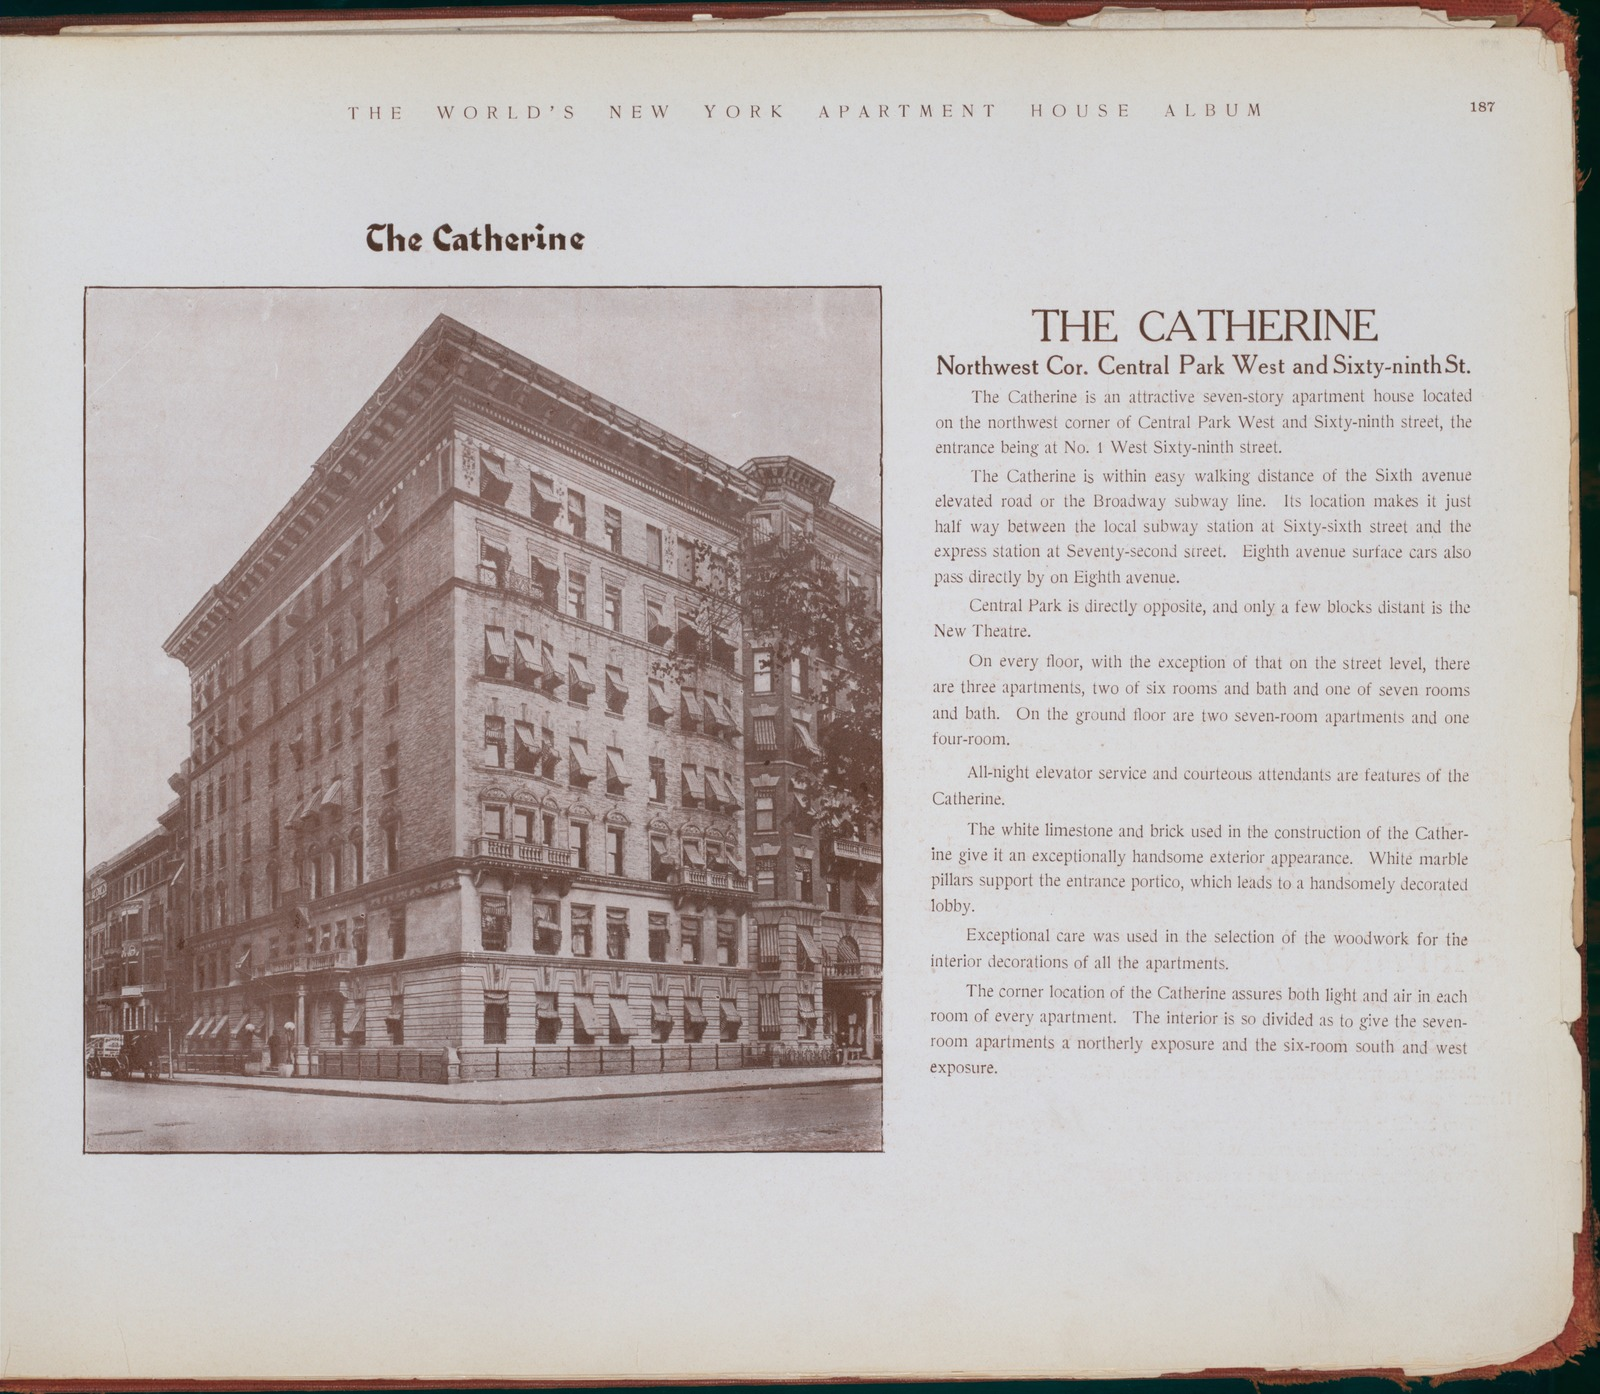 The Catherine. Northwest corner Central Park West and Sixty-ninth Street.